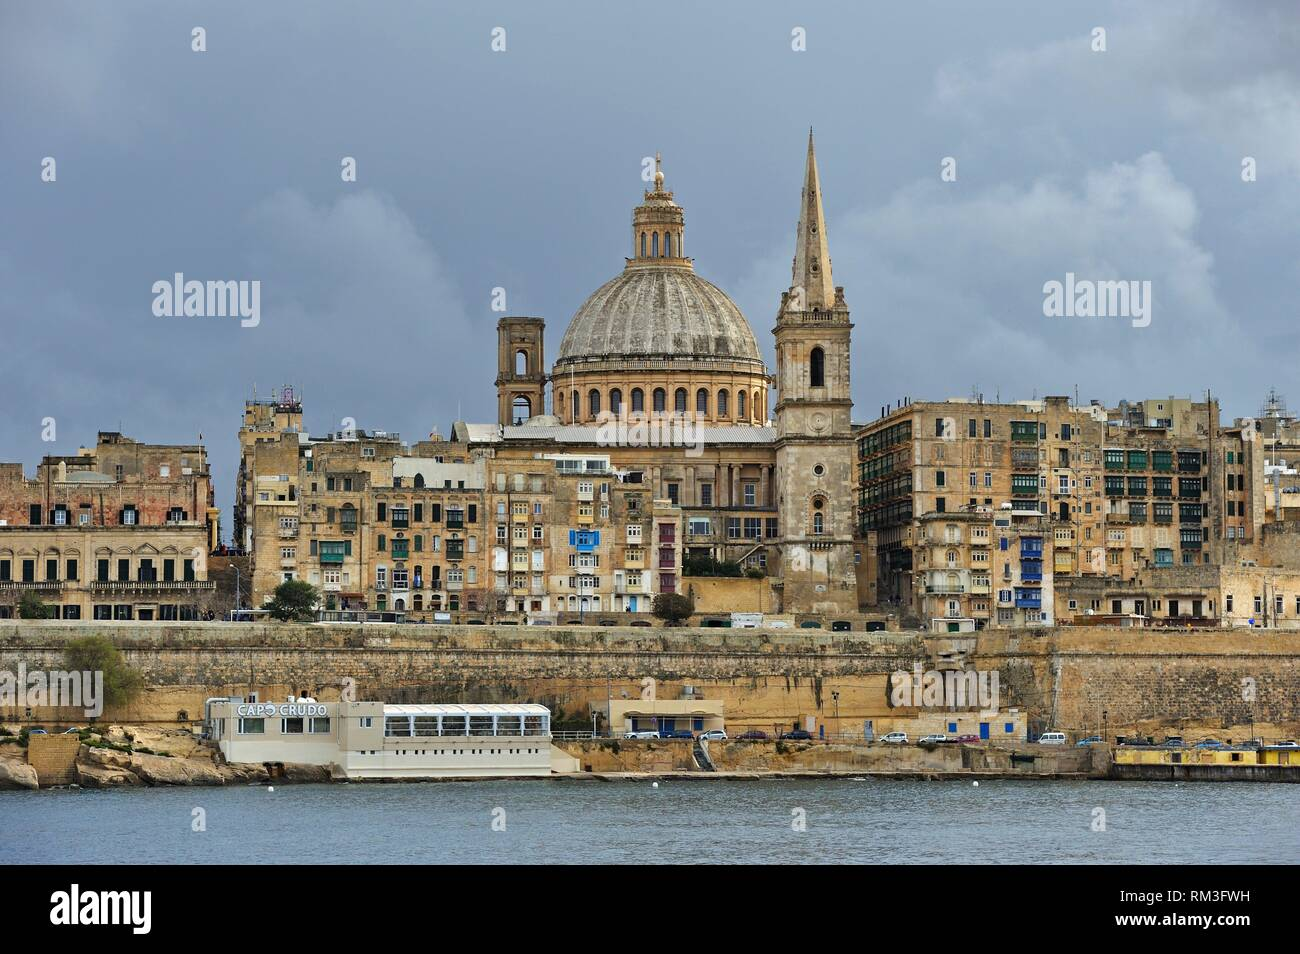 St. Paul´s Anglican Pro-Cathedral and Carmelite Church of Valetta viewed from Sliema, Malta, Mediterranean Sea, Southern Europe. - Stock Image